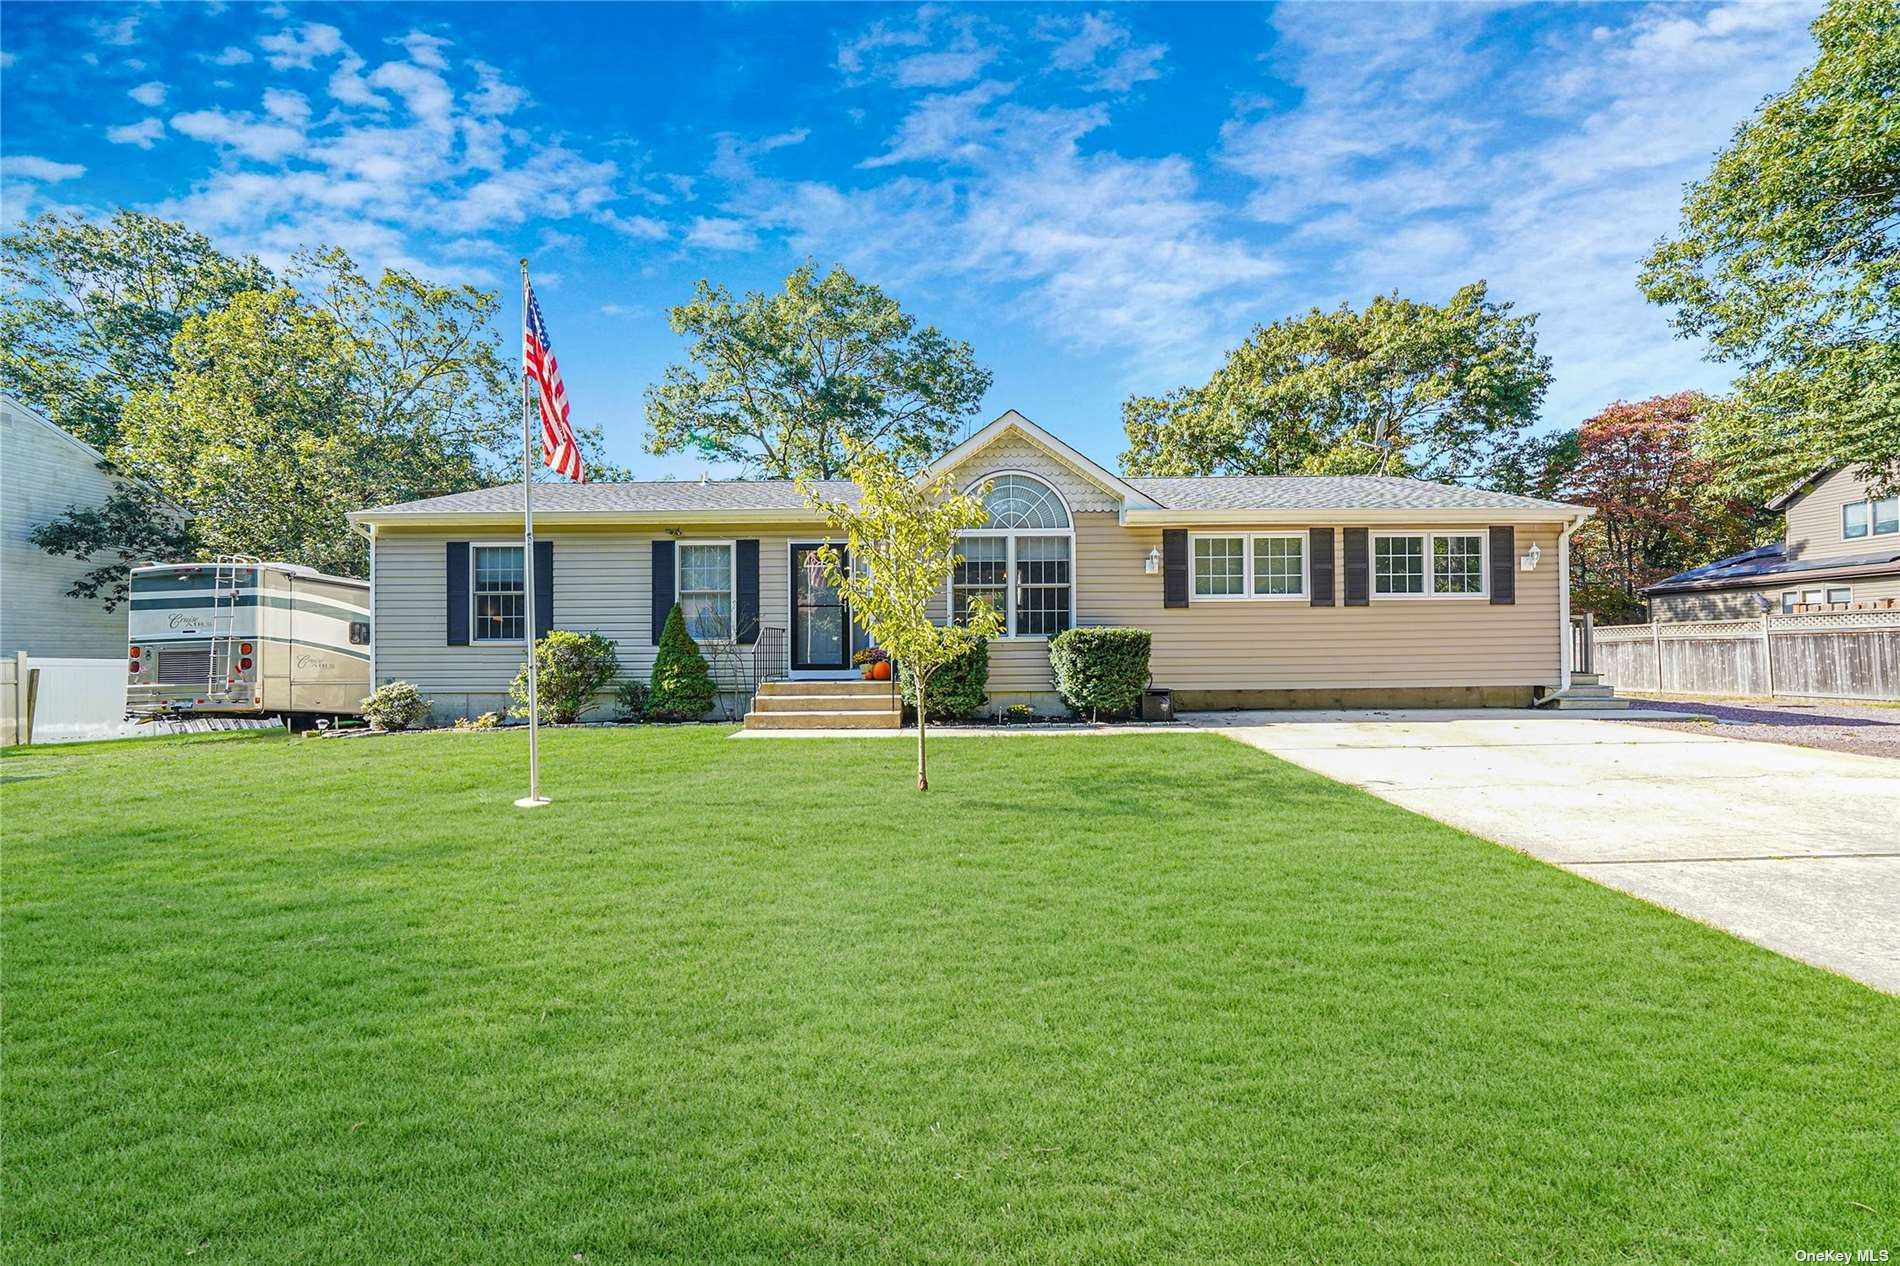 22 Mill Street, Patchogue, NY 11772 - MLS#: 3354763